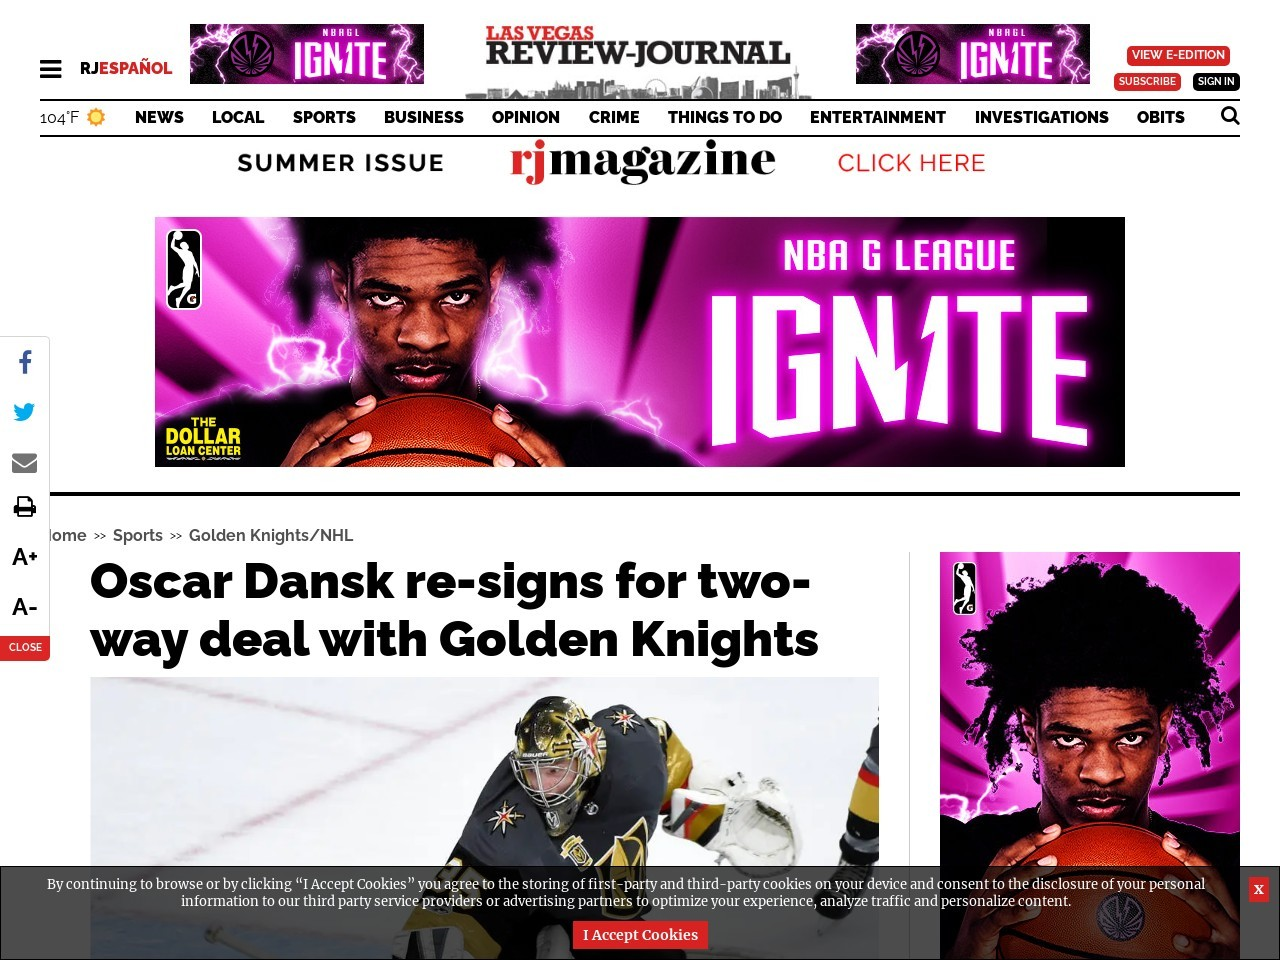 Oscar Dansk re-signs for two-way deal with Golden Knights